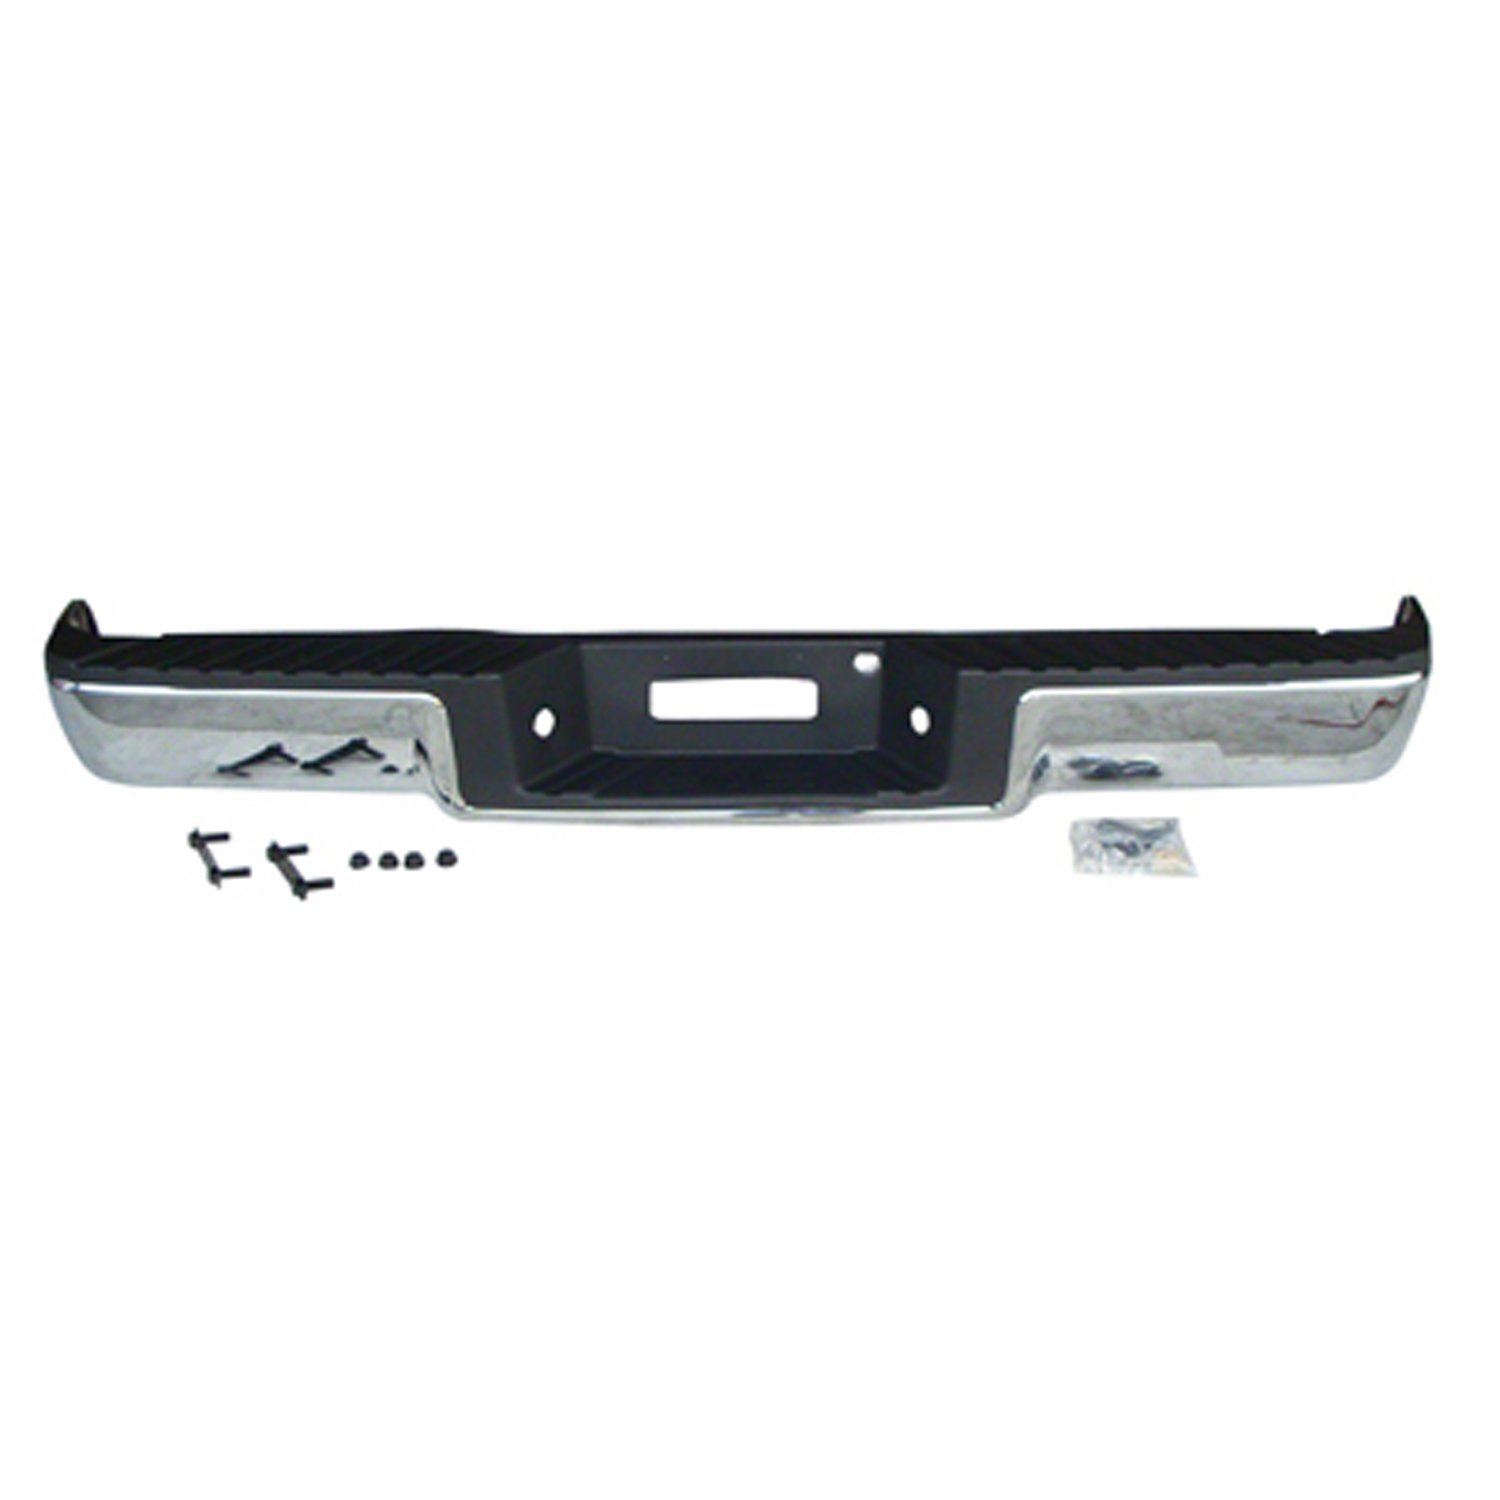 hight resolution of get quotations crash parts plus crash parts plus fo1103140 chrome rear bumper assembly for 2006 2008 ford